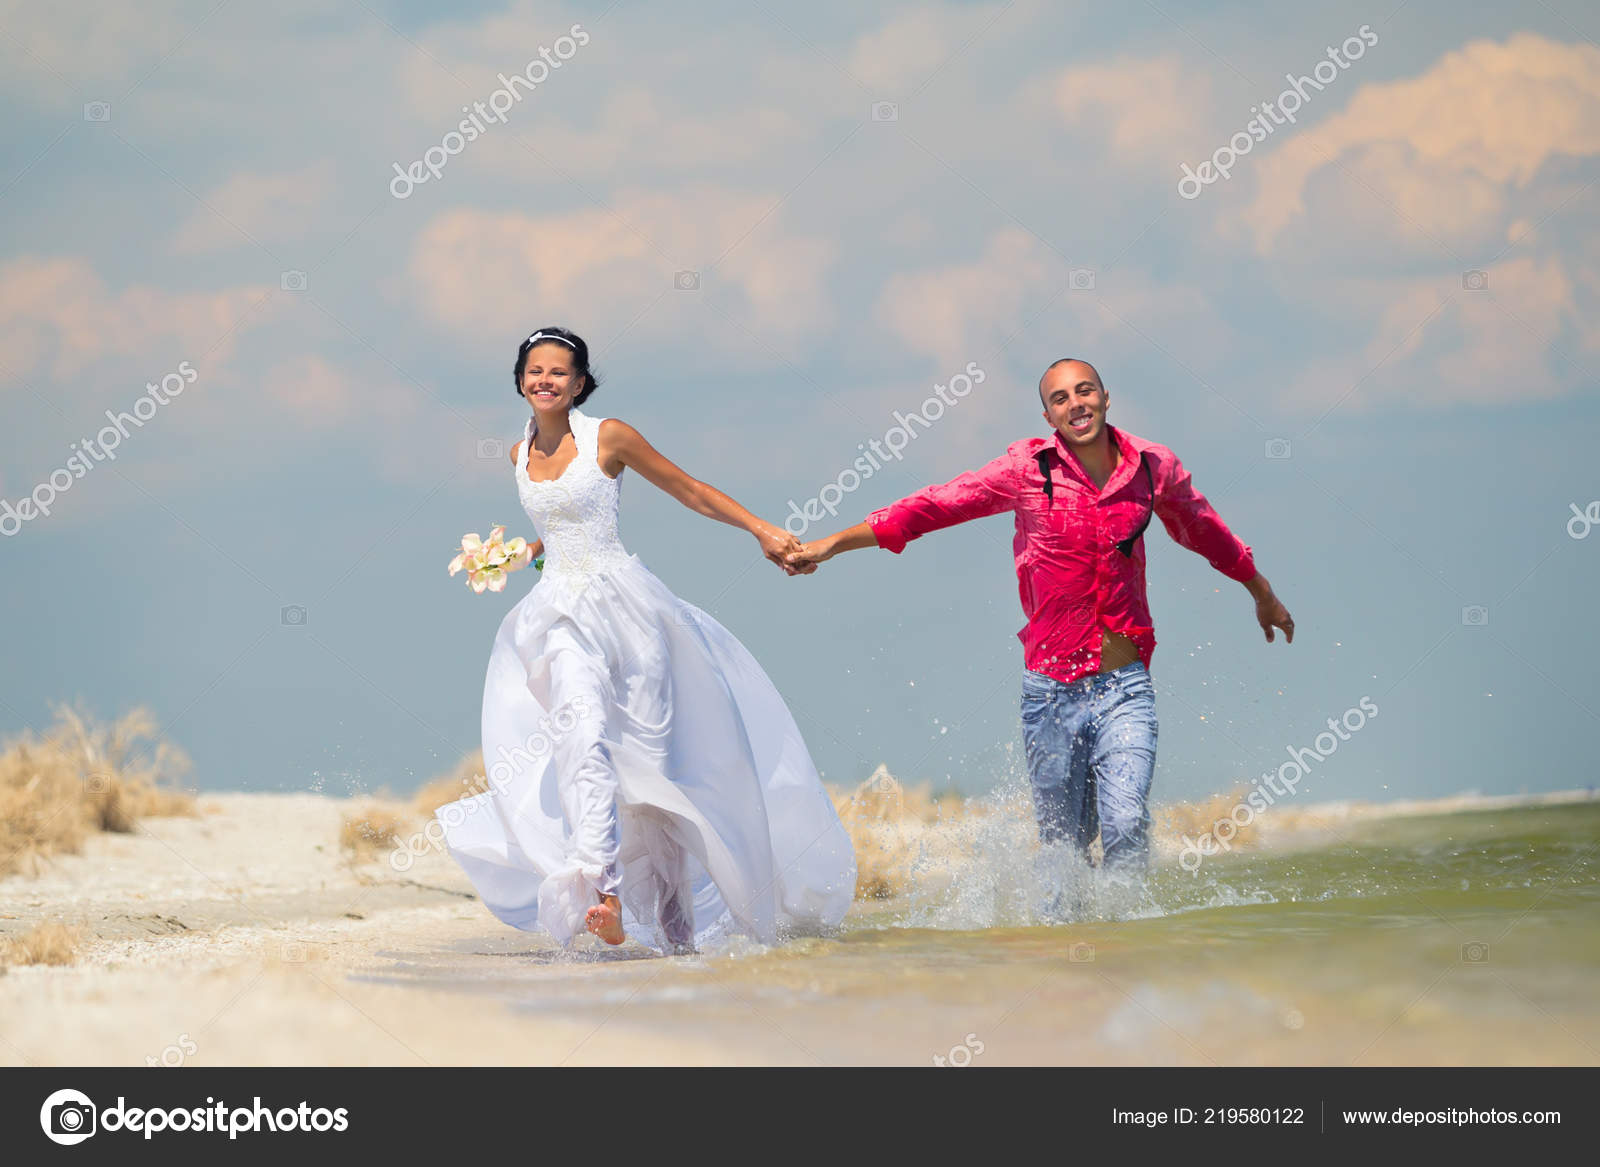 Stupendous Bride Groom Running Sunshine Beautiful Tropical Beach Download Free Architecture Designs Scobabritishbridgeorg